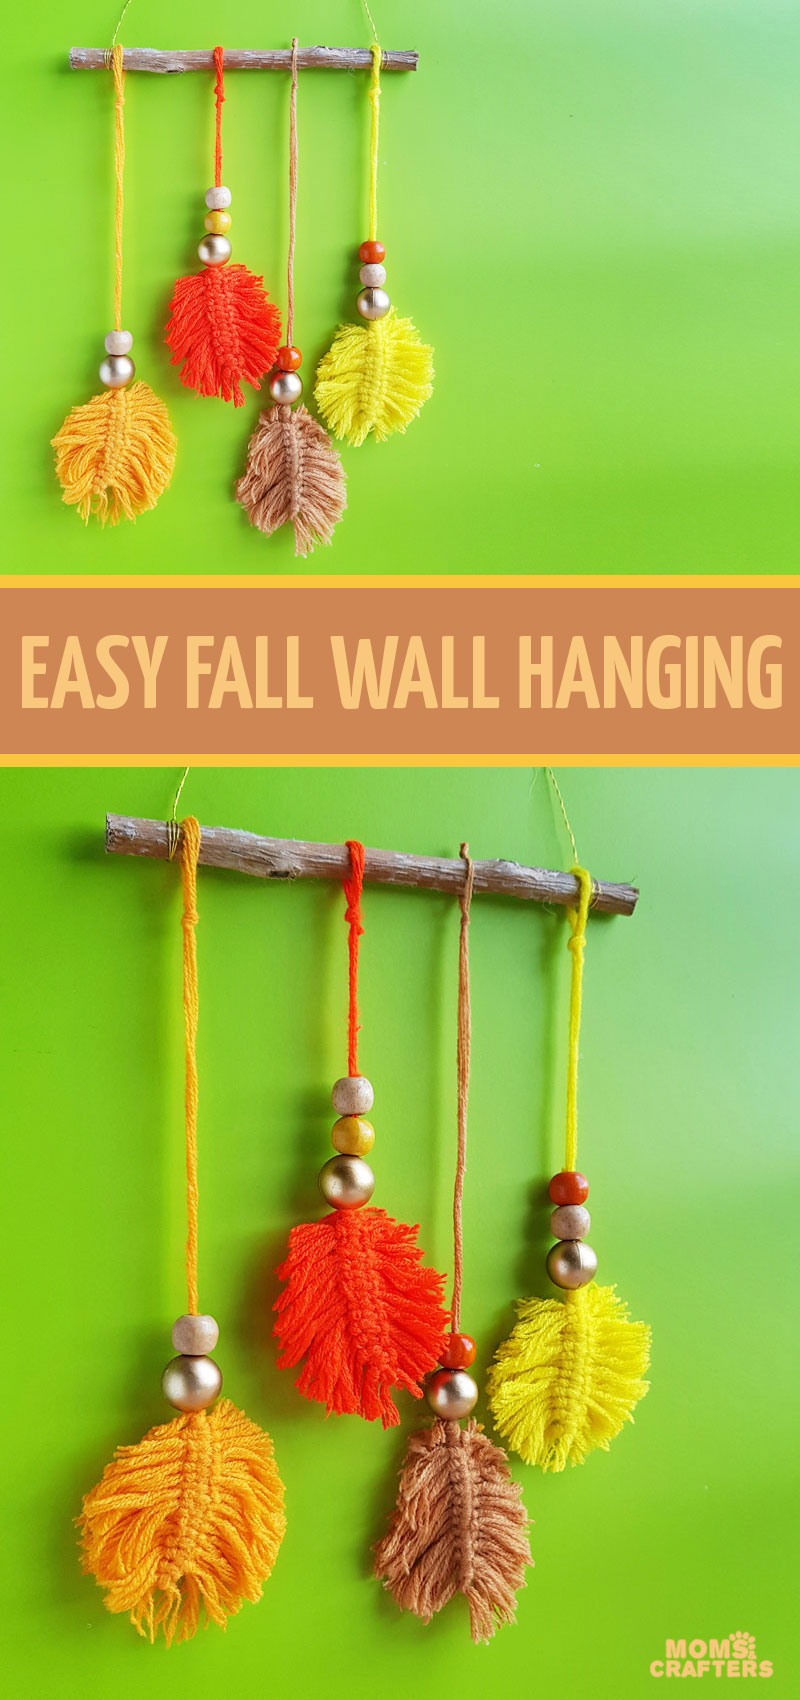 click for a tutorial on how to make macrame leaves for fun fall DIY decor! This yarn wall hanging for autumn is fun and colorful and a cool fall craft for teens and tweens.